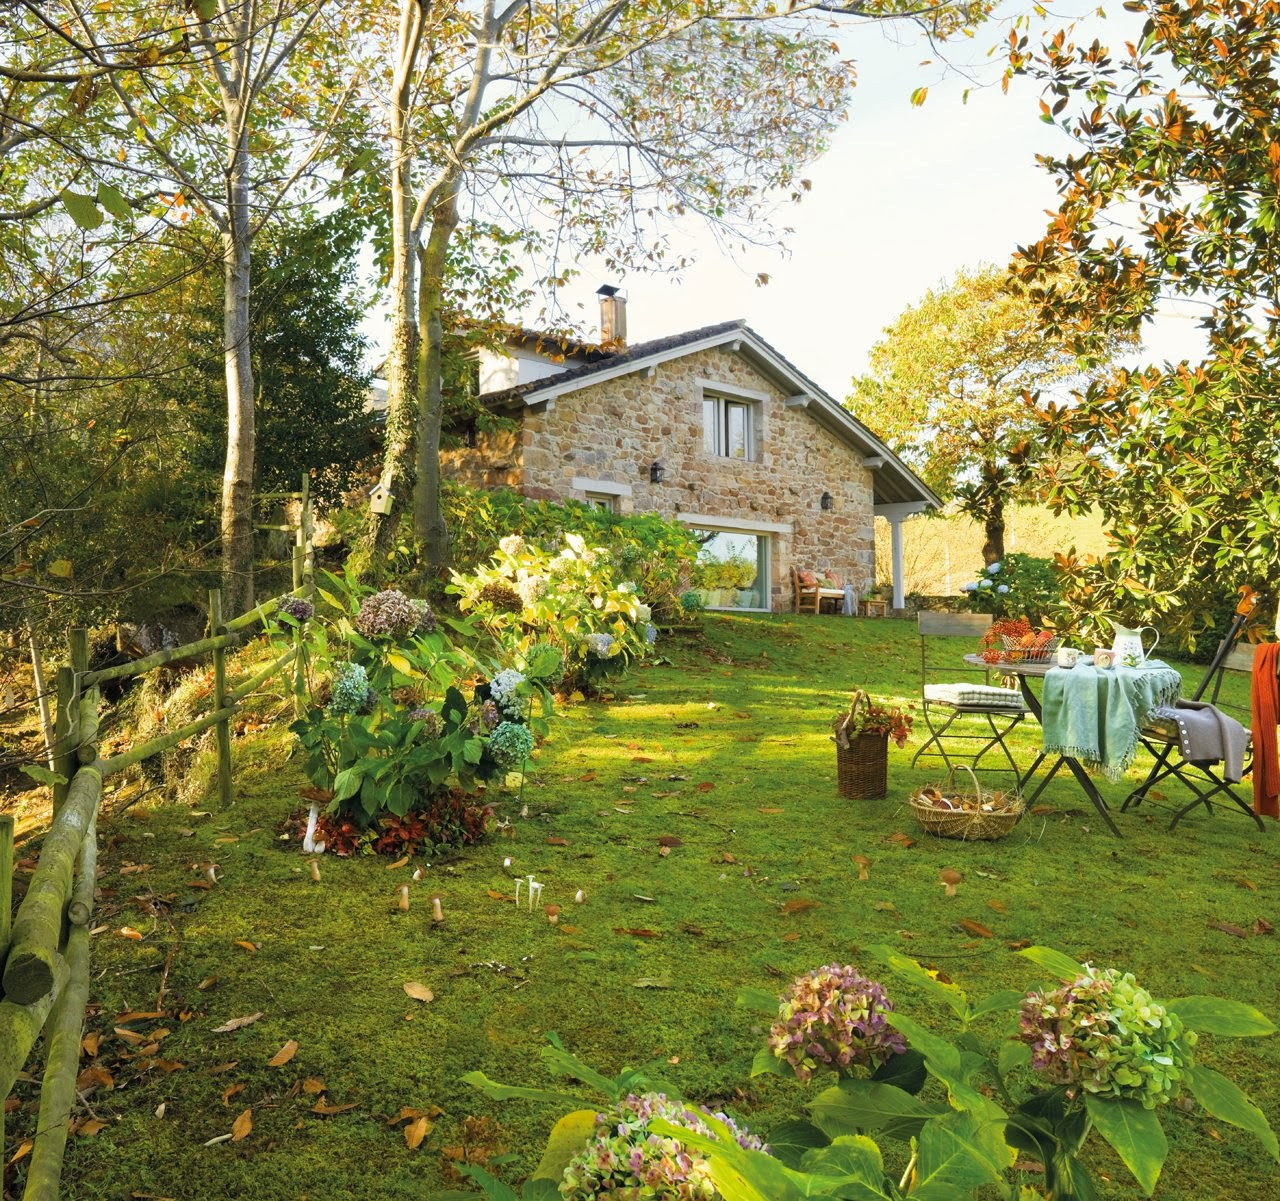 Family House With Wonderful Garden